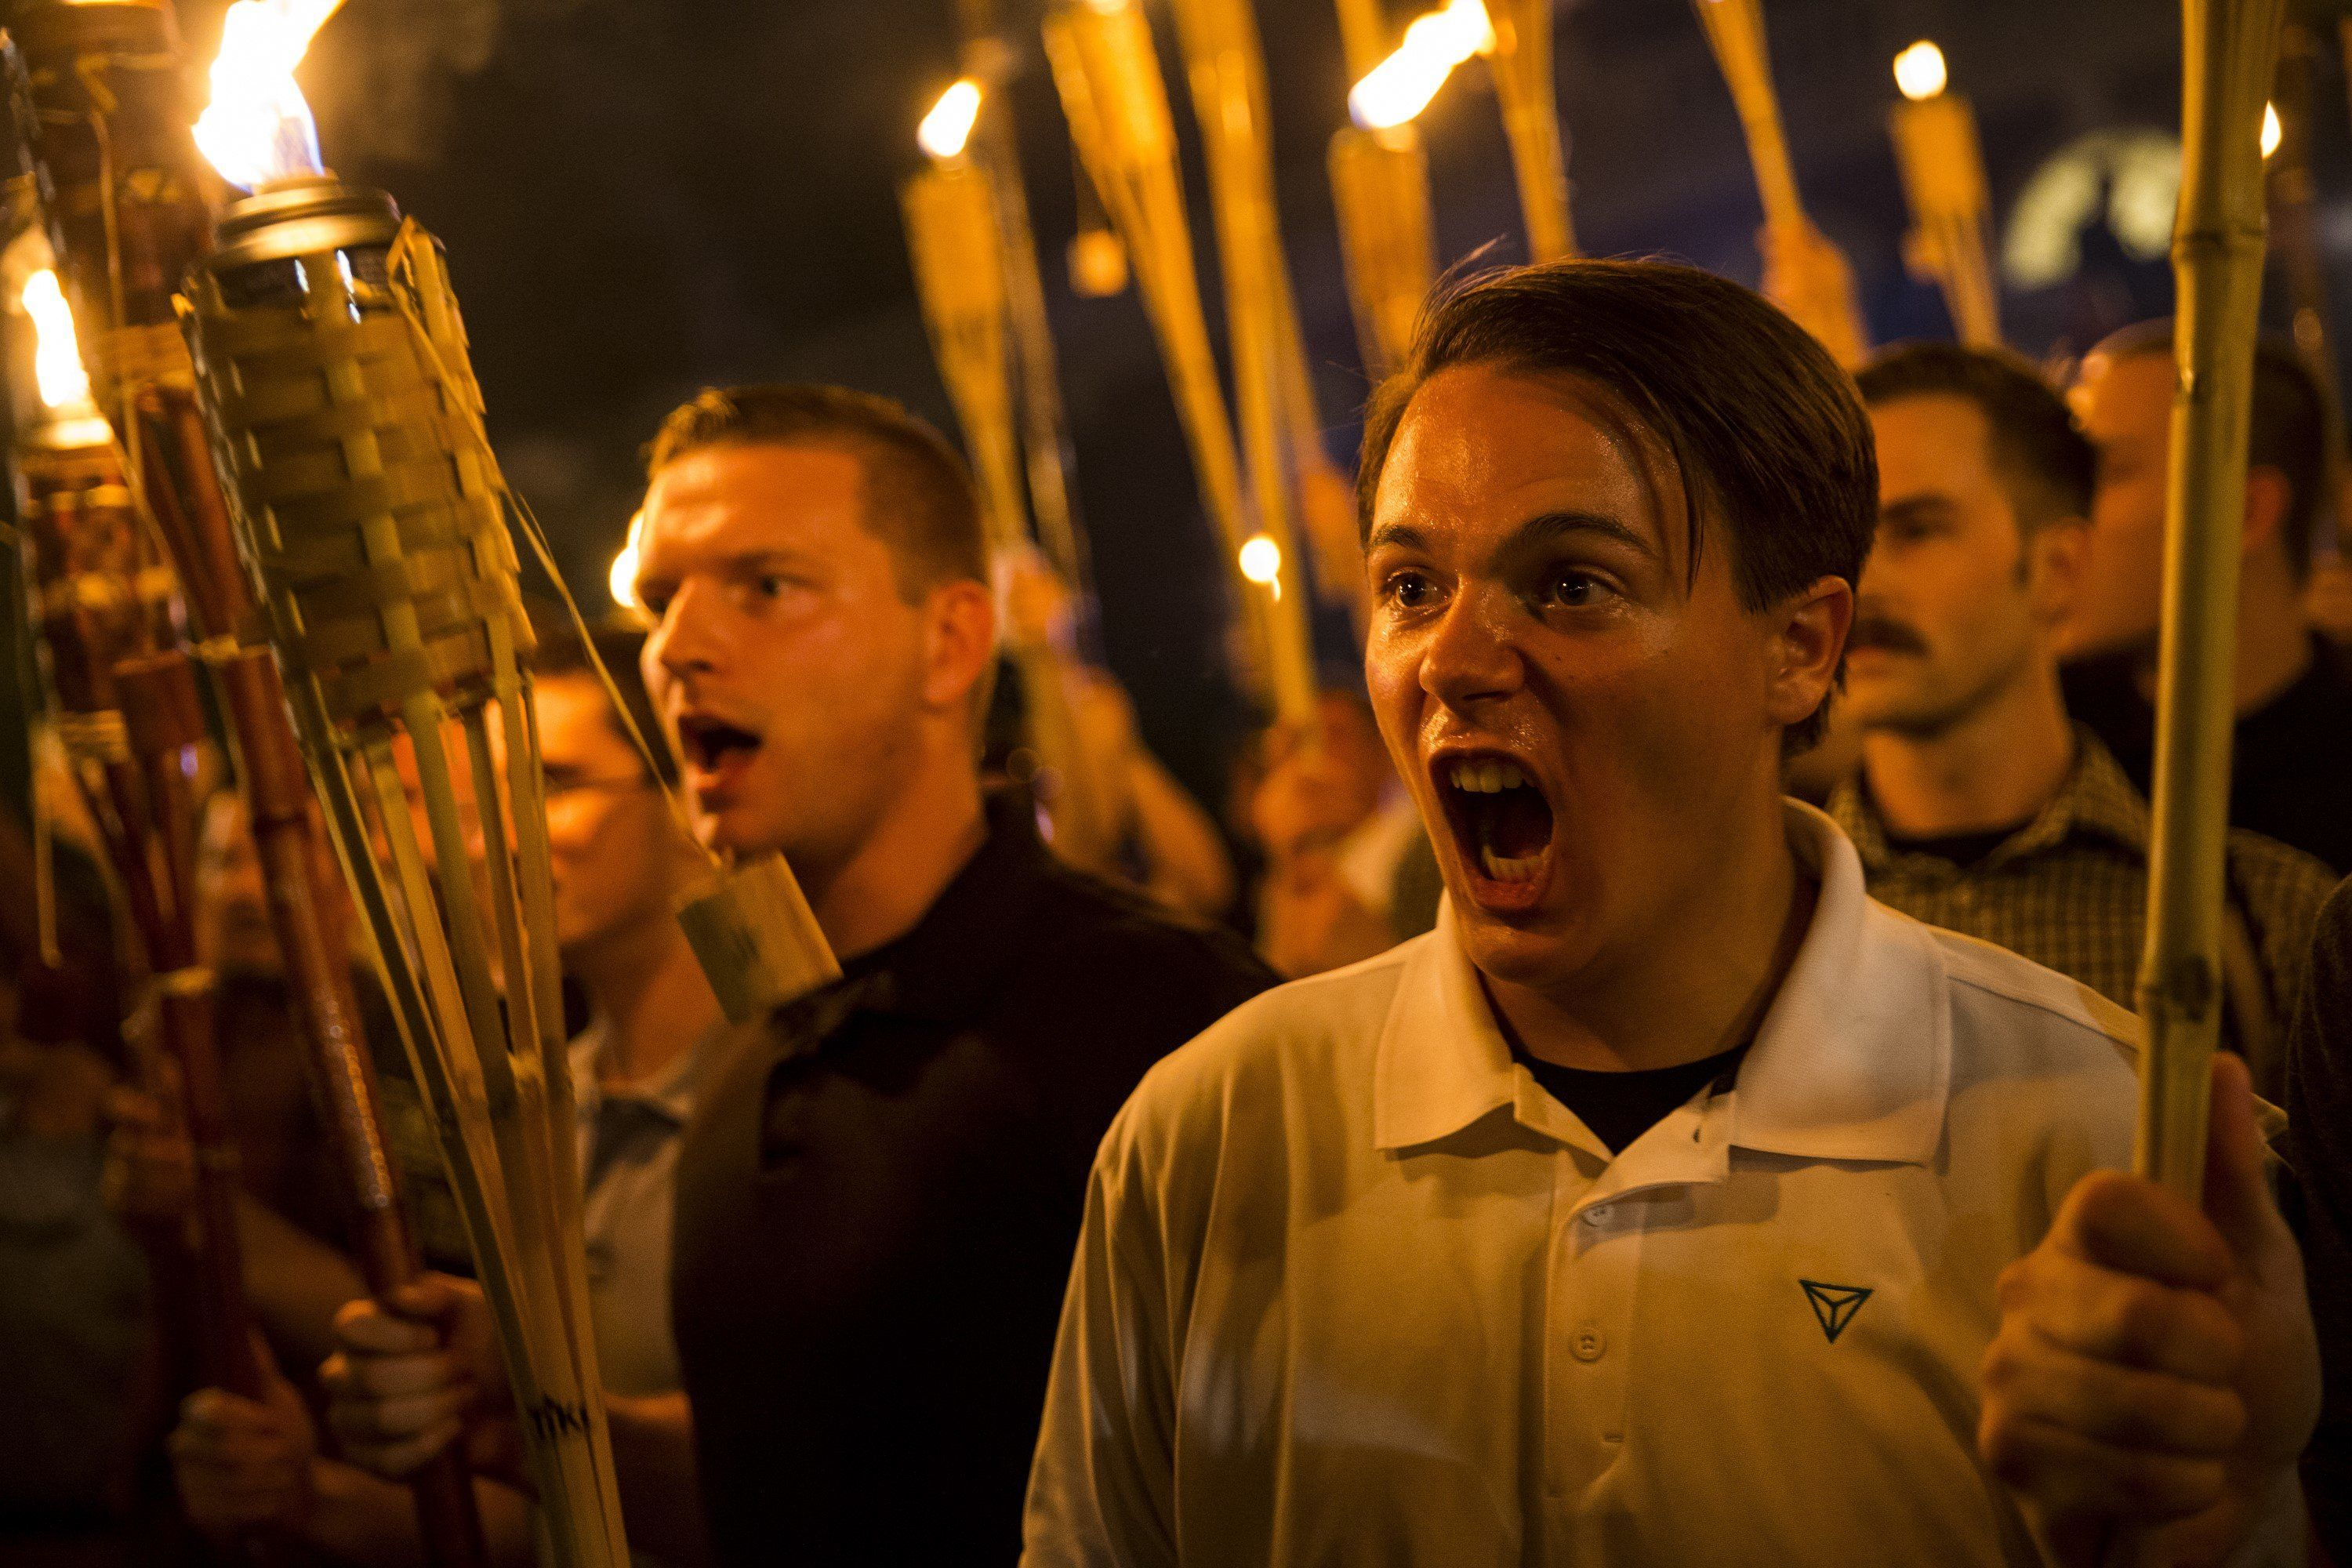 ADL: 'Alarming Increase' In White Supremacist Activity On Campuses